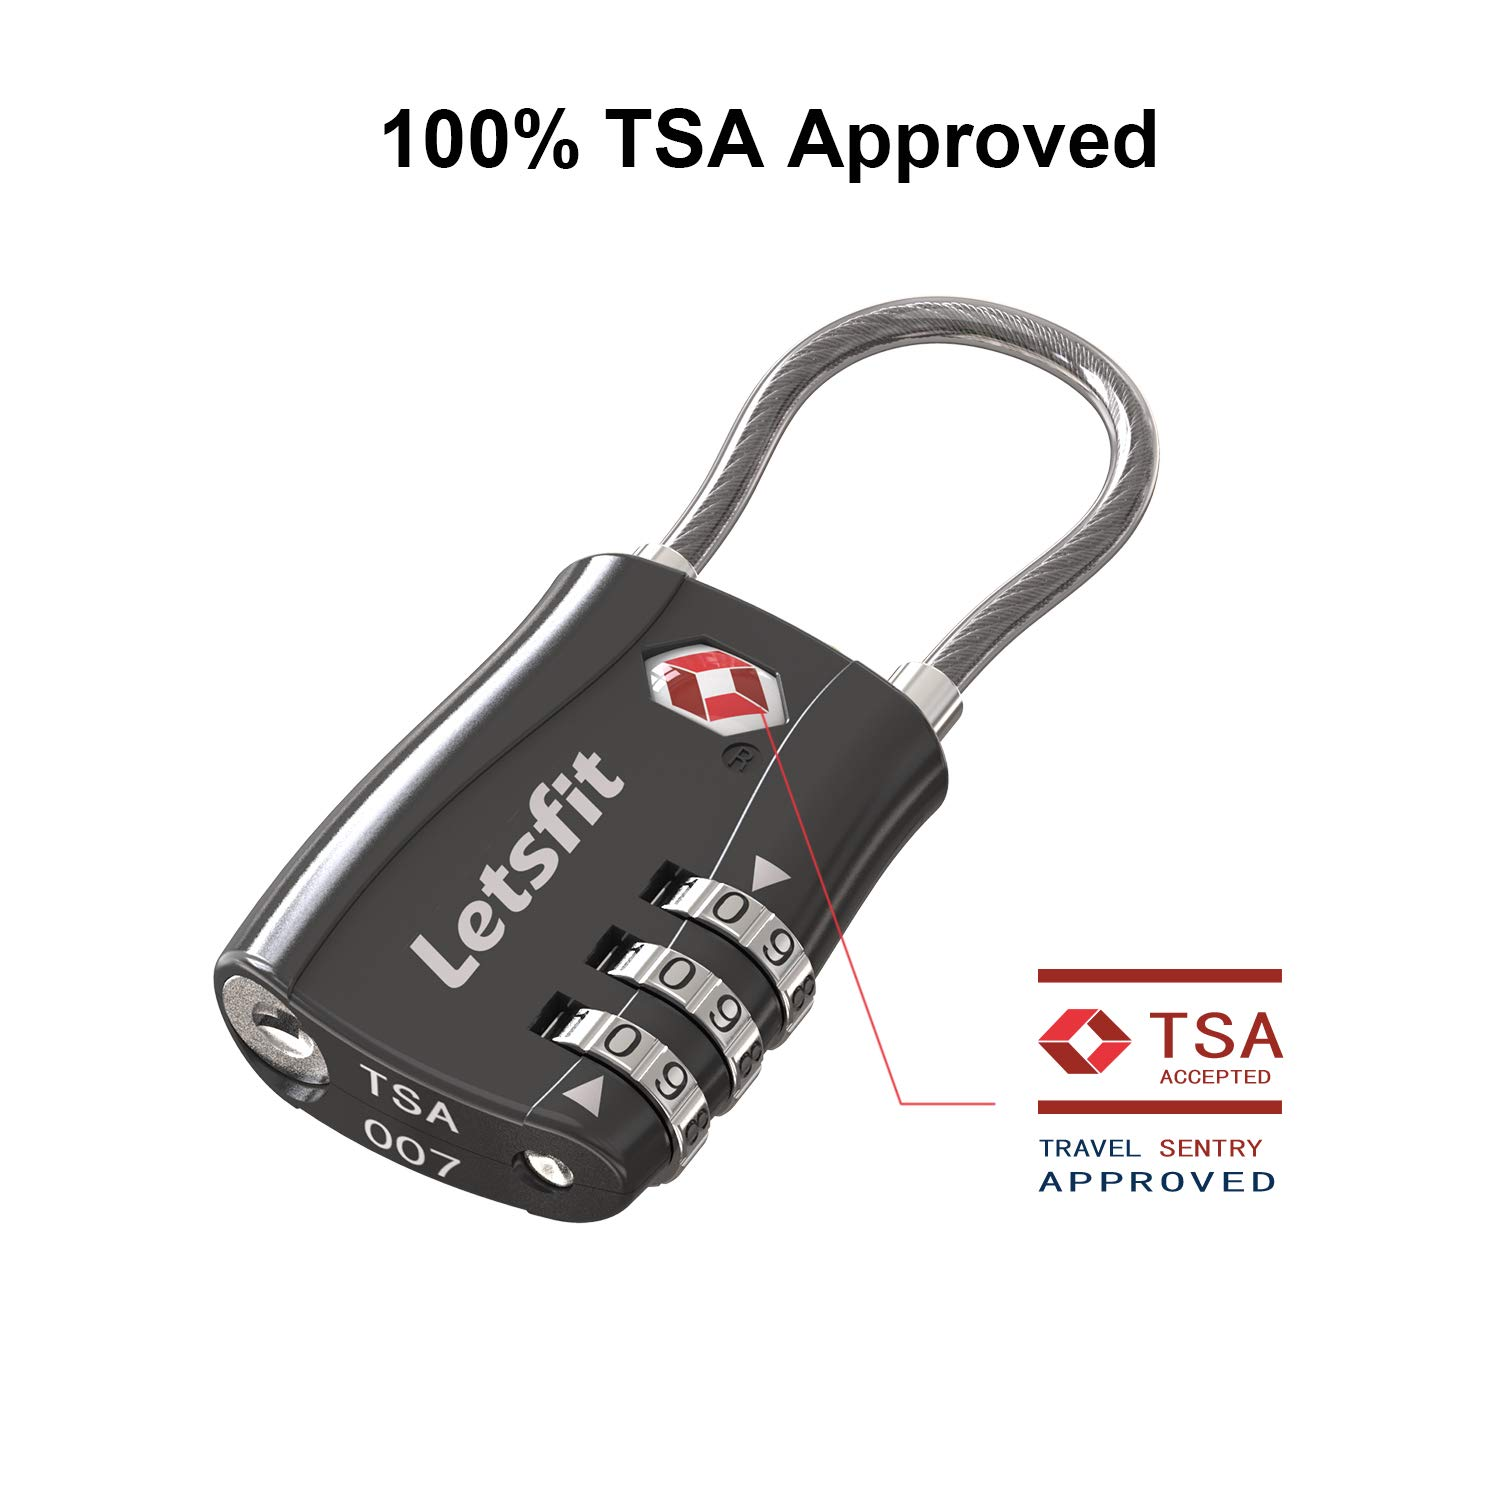 TSA Approved Luggage Lock, Letsfit Travel Lock for Suitcases, Small Padlock for Luggage, 4 Pack Black